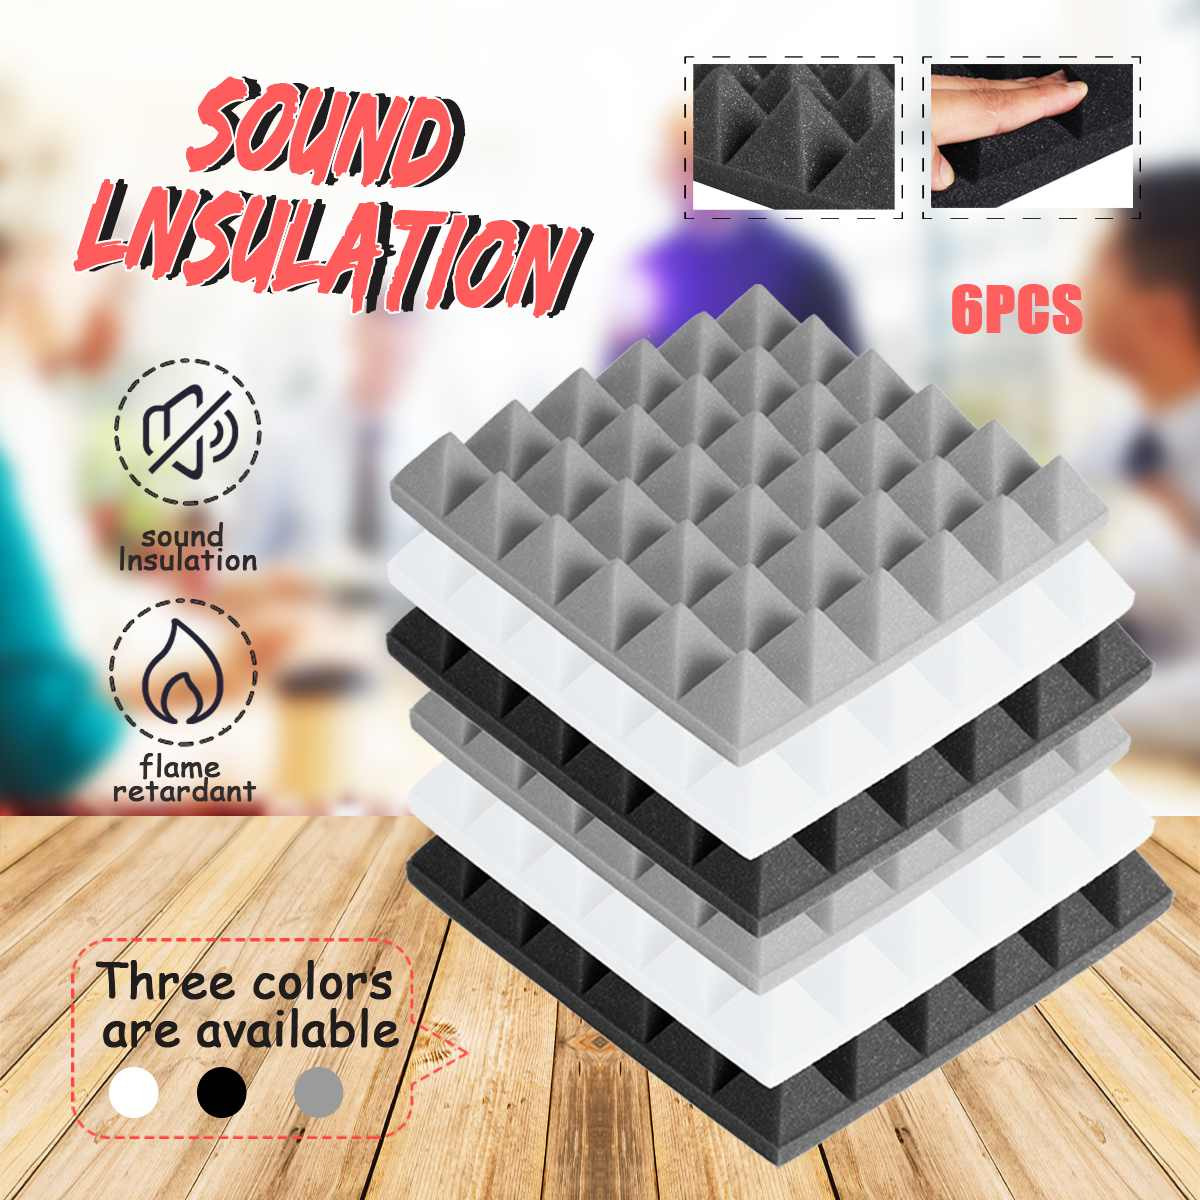 6pcs 30x30x5cm Pyramid Sound Absorbing Sponge Stop Absorption Sponge Drum Room Accessories Cotton Noise Sponge Thickness 5cm